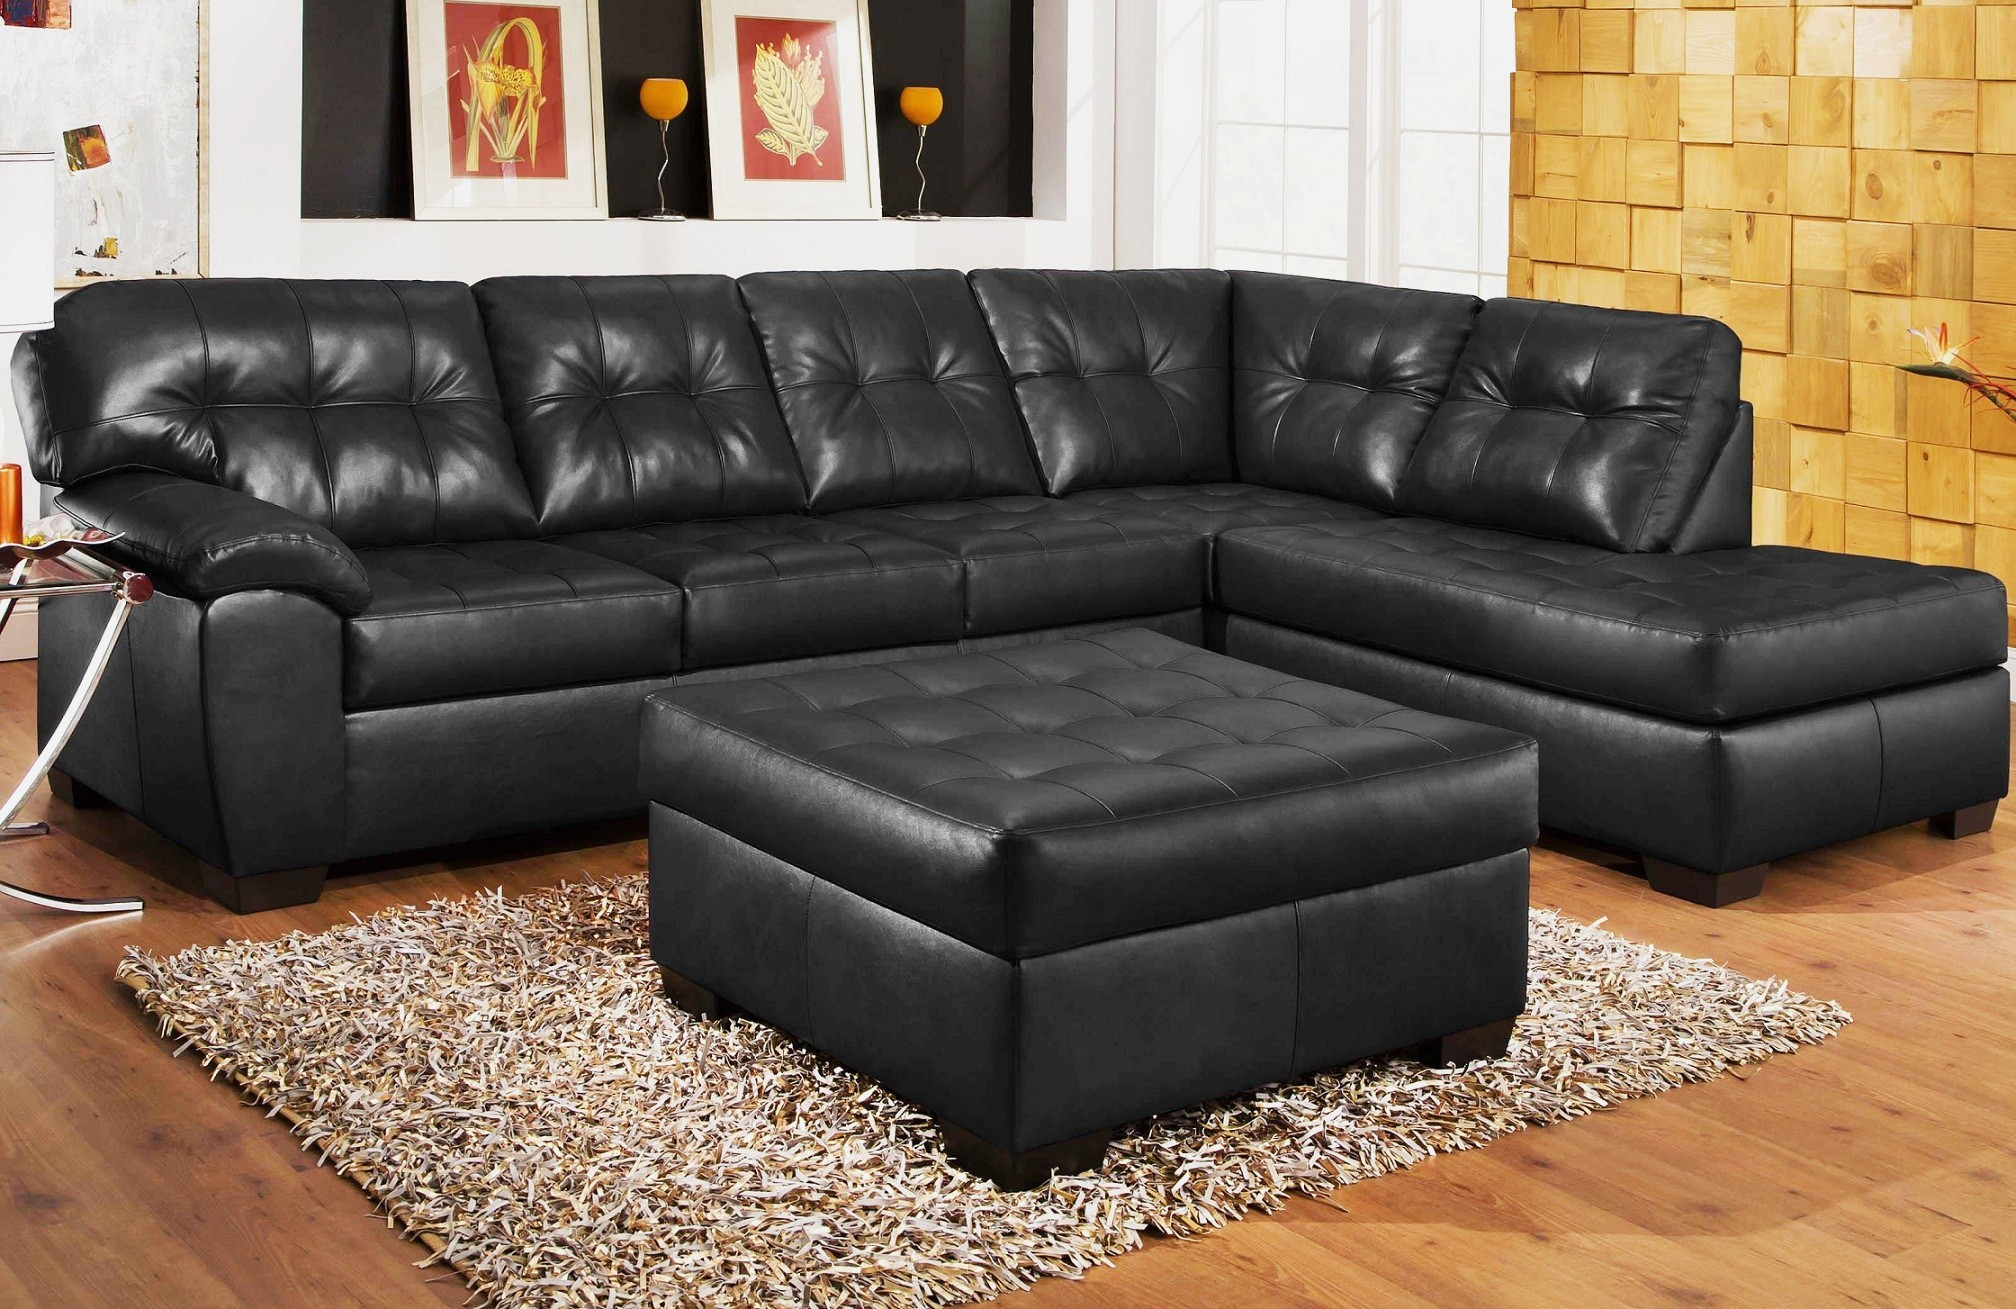 Rooms to Go Leather sofa Lovely Rooms to Go Leather sofa Best Rooms to Go Leather sofa Layout